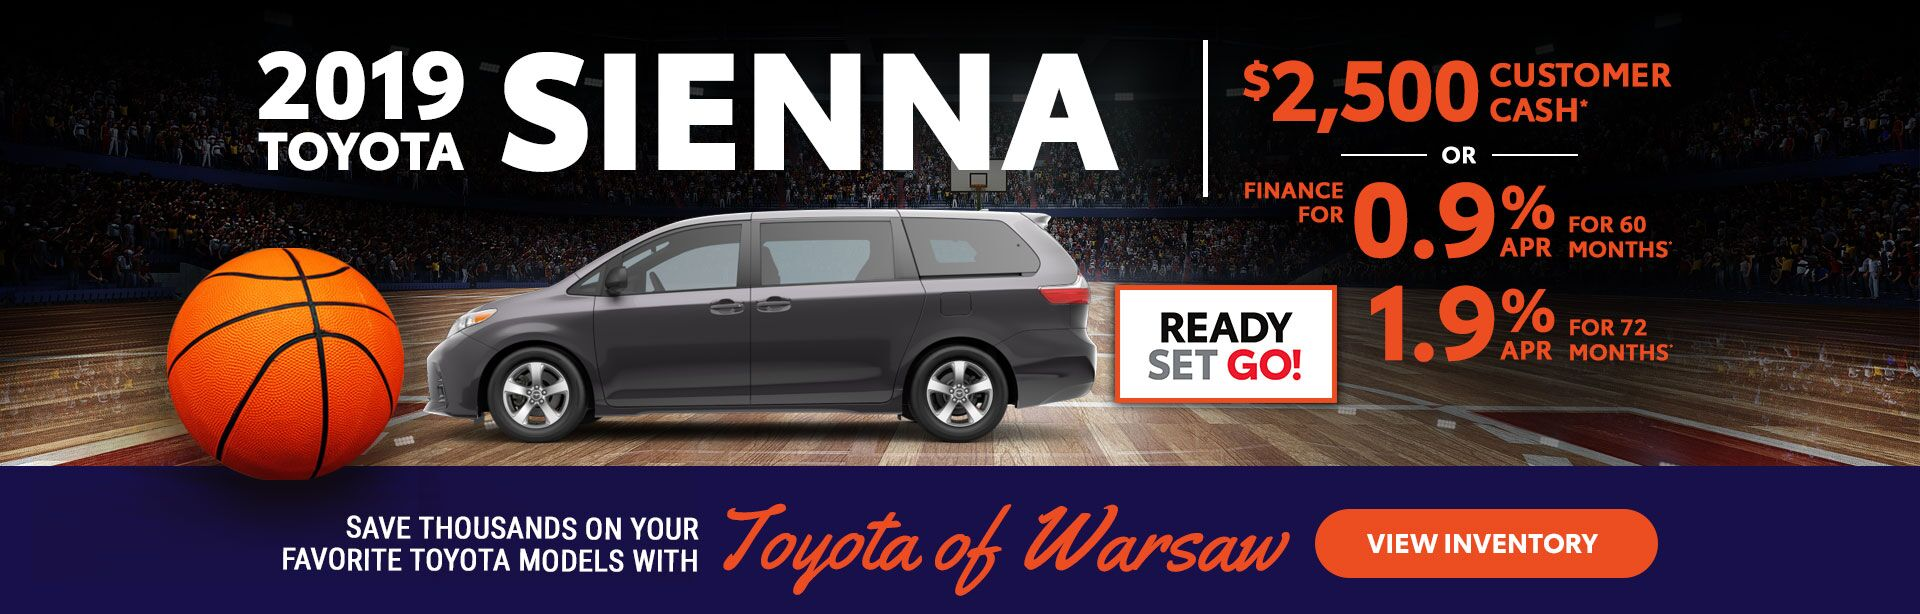 2019 Sienna: $2,000 customer cash or 0.9% APR for 60 months/1.9% APR for 72 months